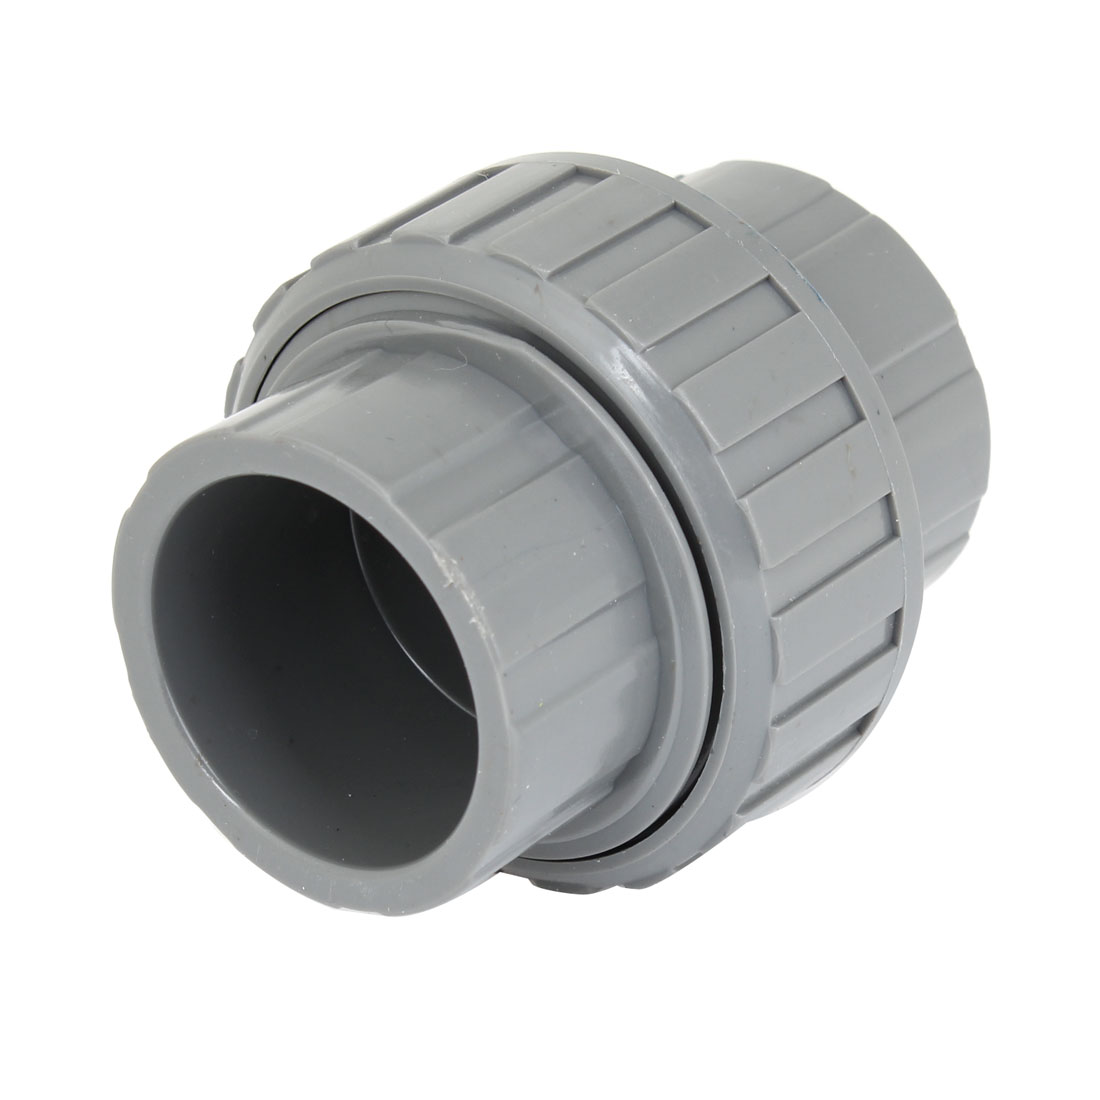 32mm Inner Diameter Male Adapter PVC Pipe Fitting Straight Connector Gray